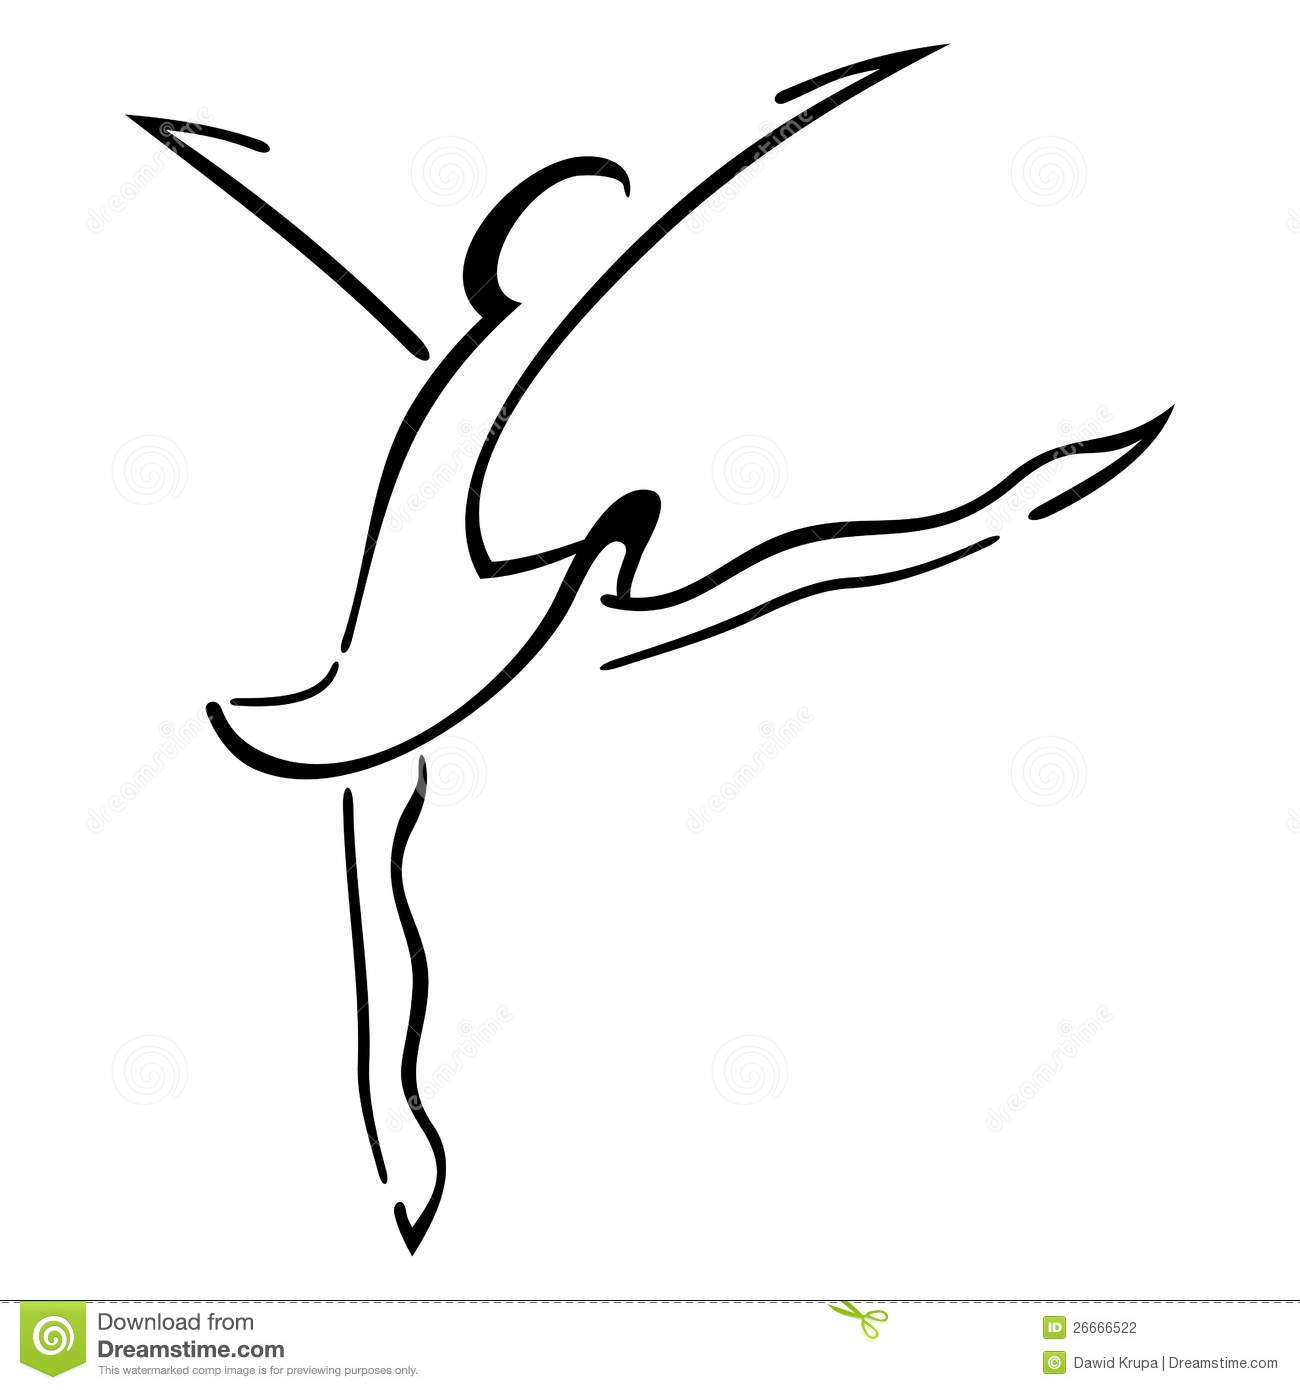 old plane illustration with Stock Photography Dance Symbol Image26666522 on Biplane top view further Stock Photography Dance Symbol Image26666522 additionally A380 Qatar Airways 68407145 together with Lessons2 furthermore 8 Tropic Islands Vectors 11392.